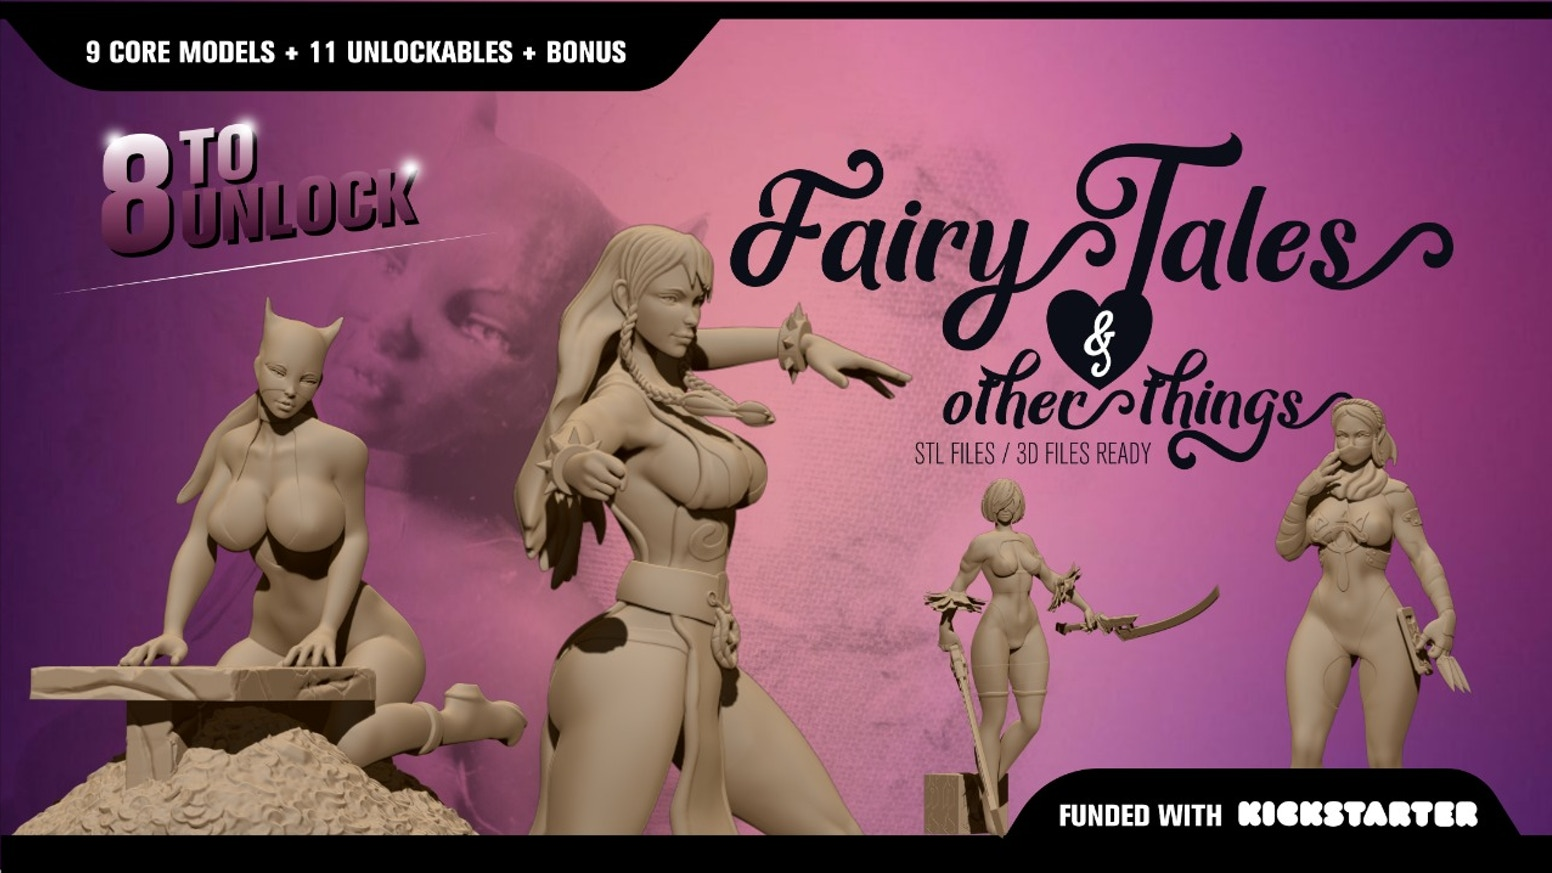 Sexy miniatures & collectables STL Files for 3D printing, 150mm  Goddesses & heroines resin or fdm